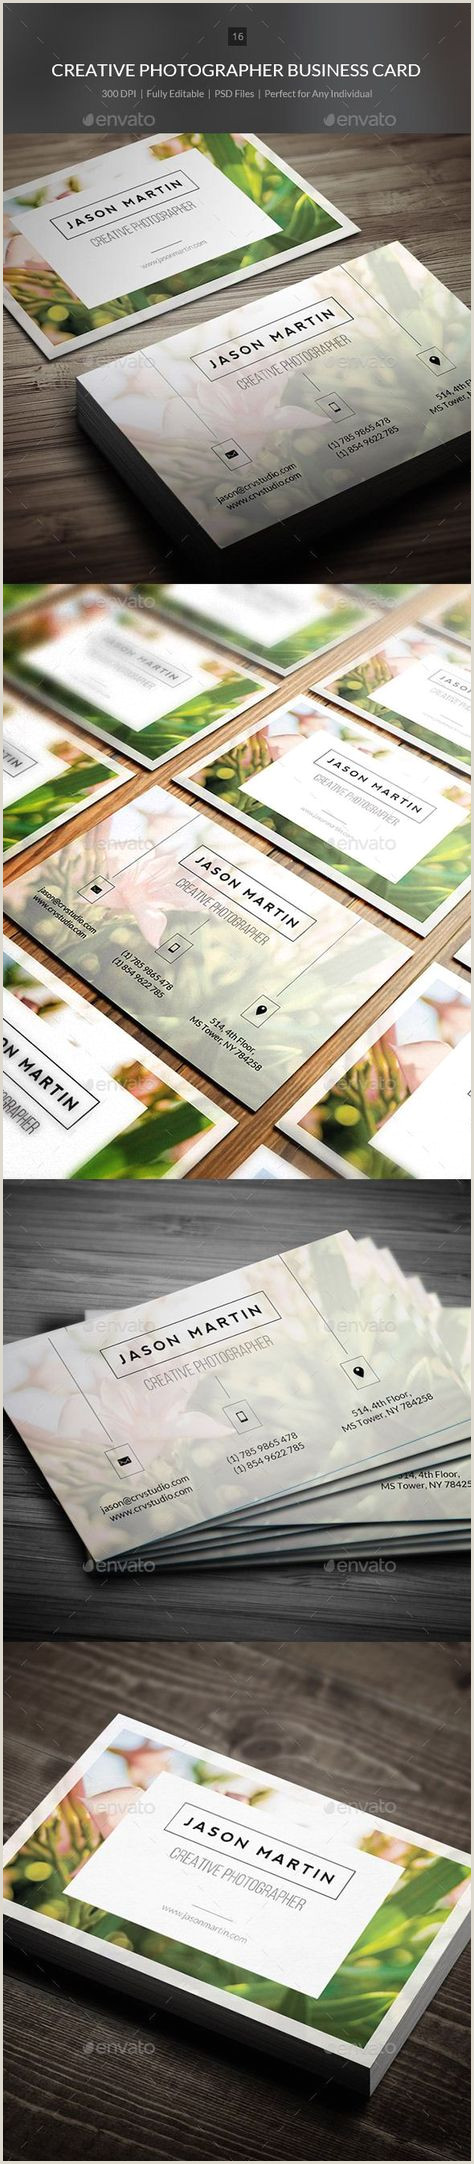 Photography Business Card Examples 40 Trendy Ideas Photography Business Cards Template Creative